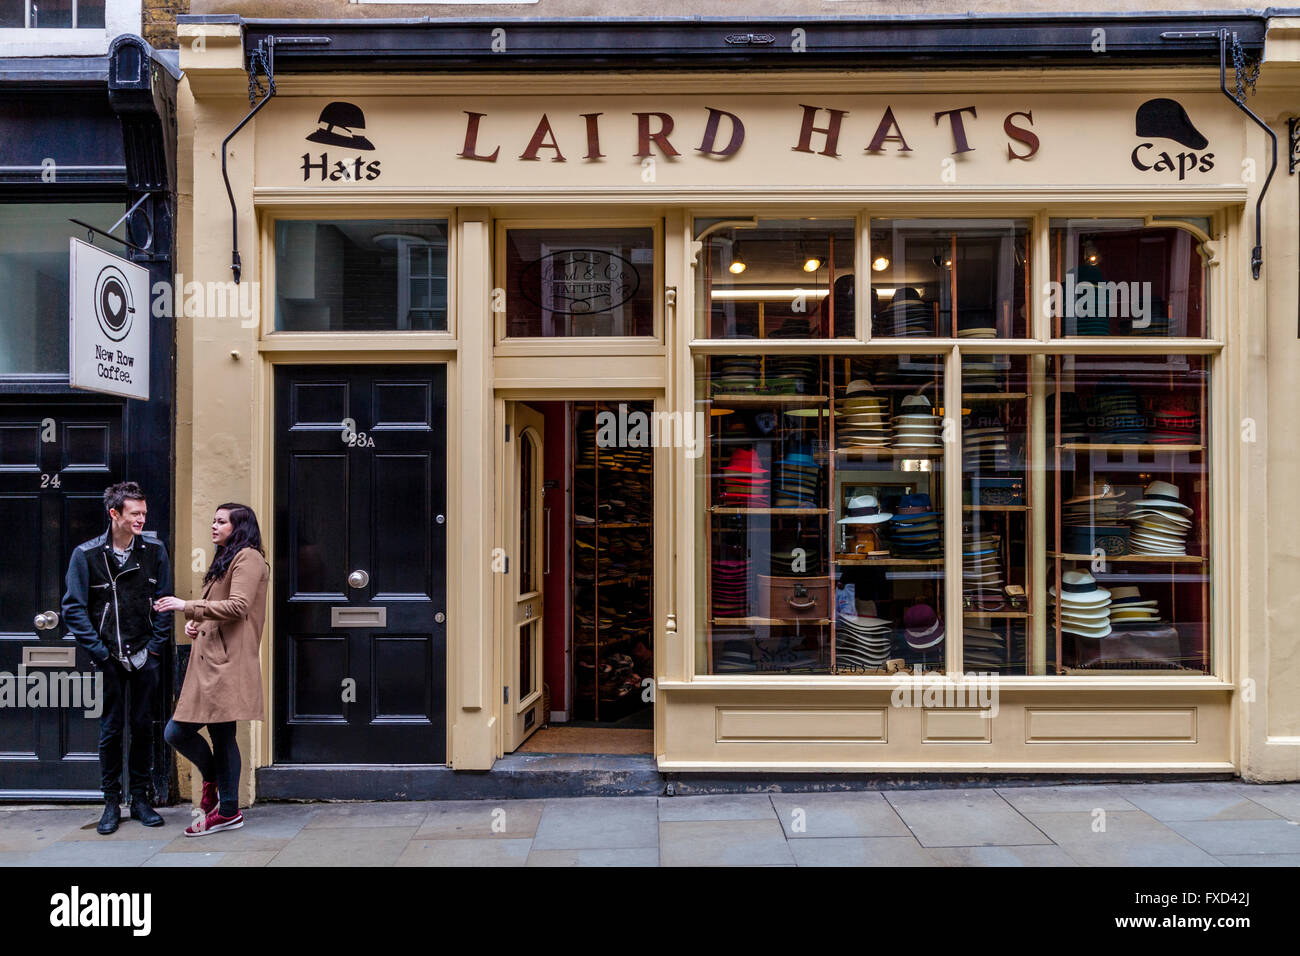 Laird Hat Shop, New Row, Covent Garden, London, UK - Stock Image